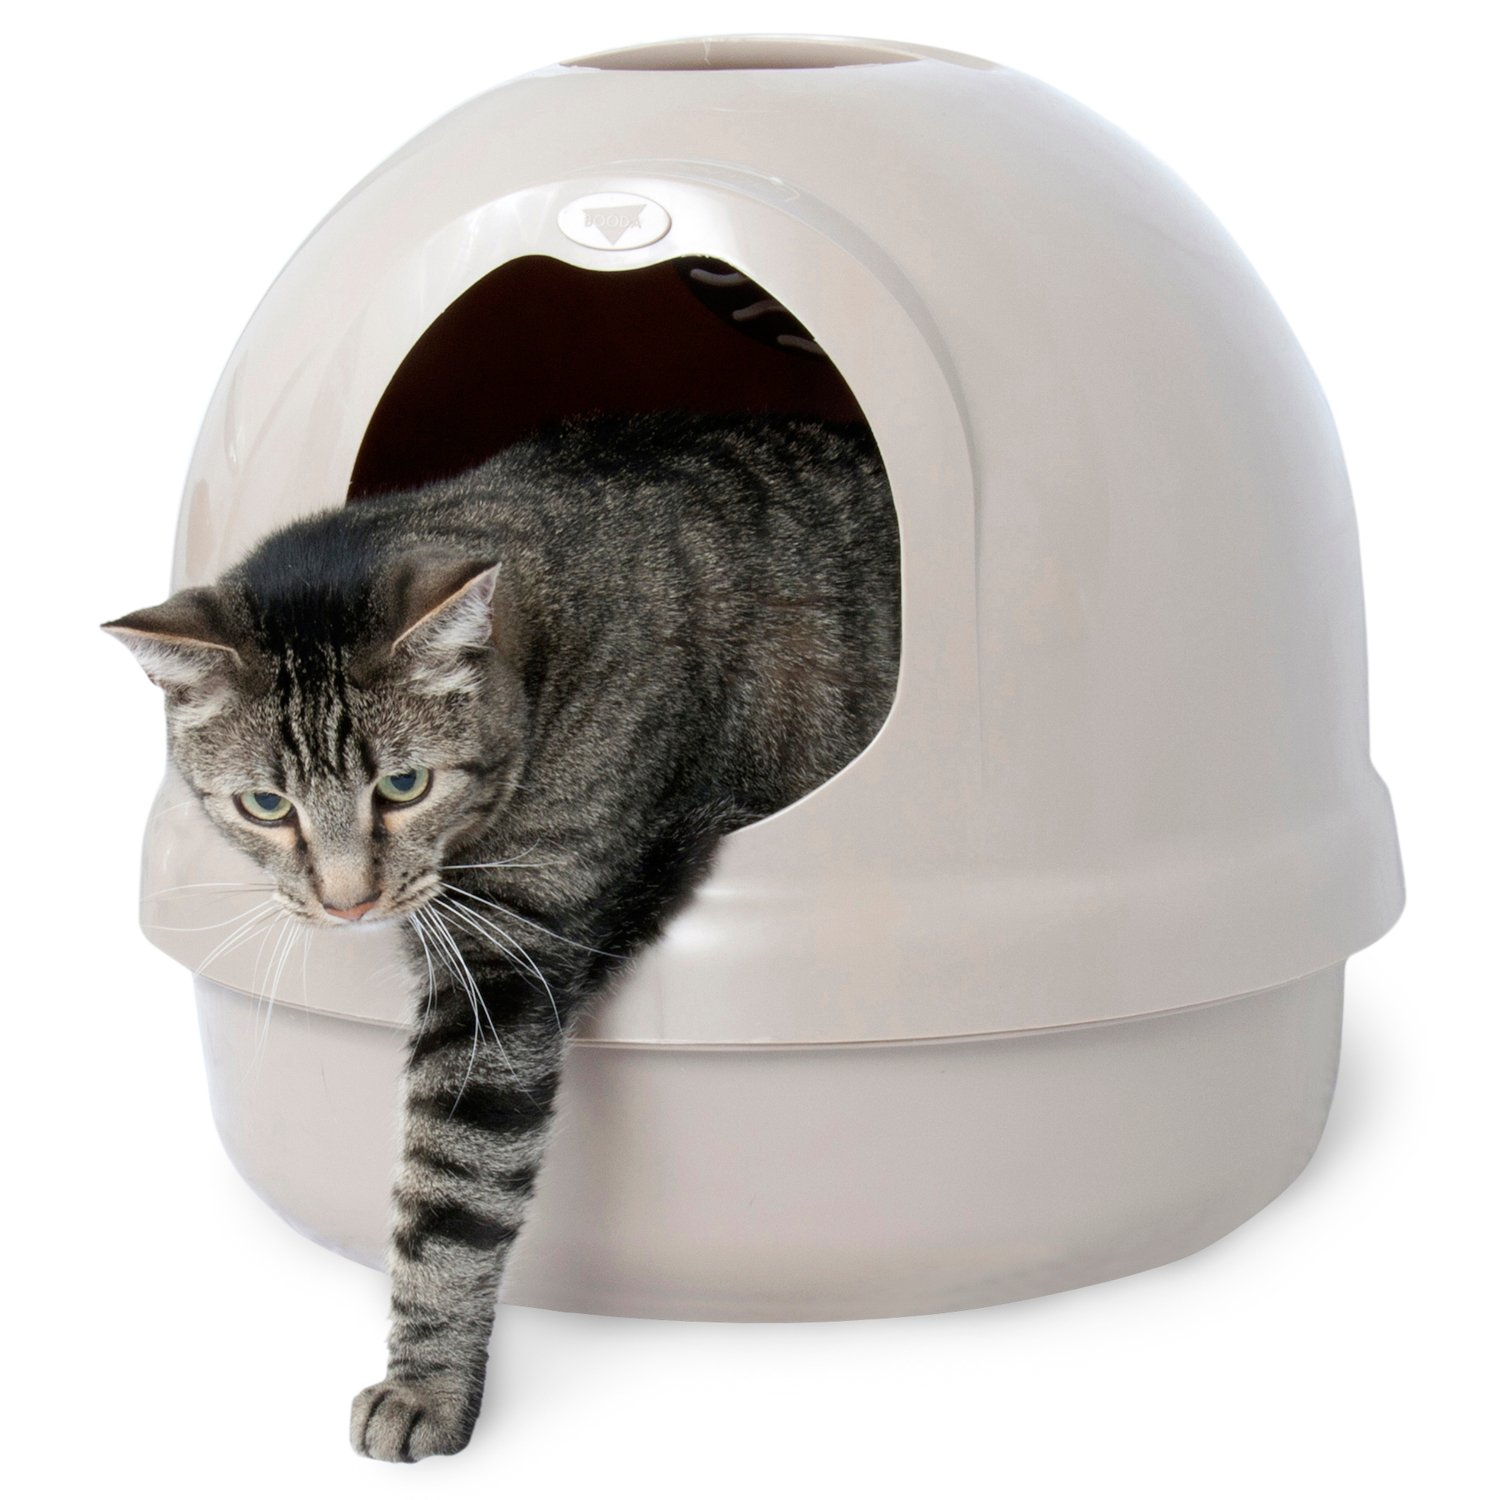 Which Are The Best Cat Feeders